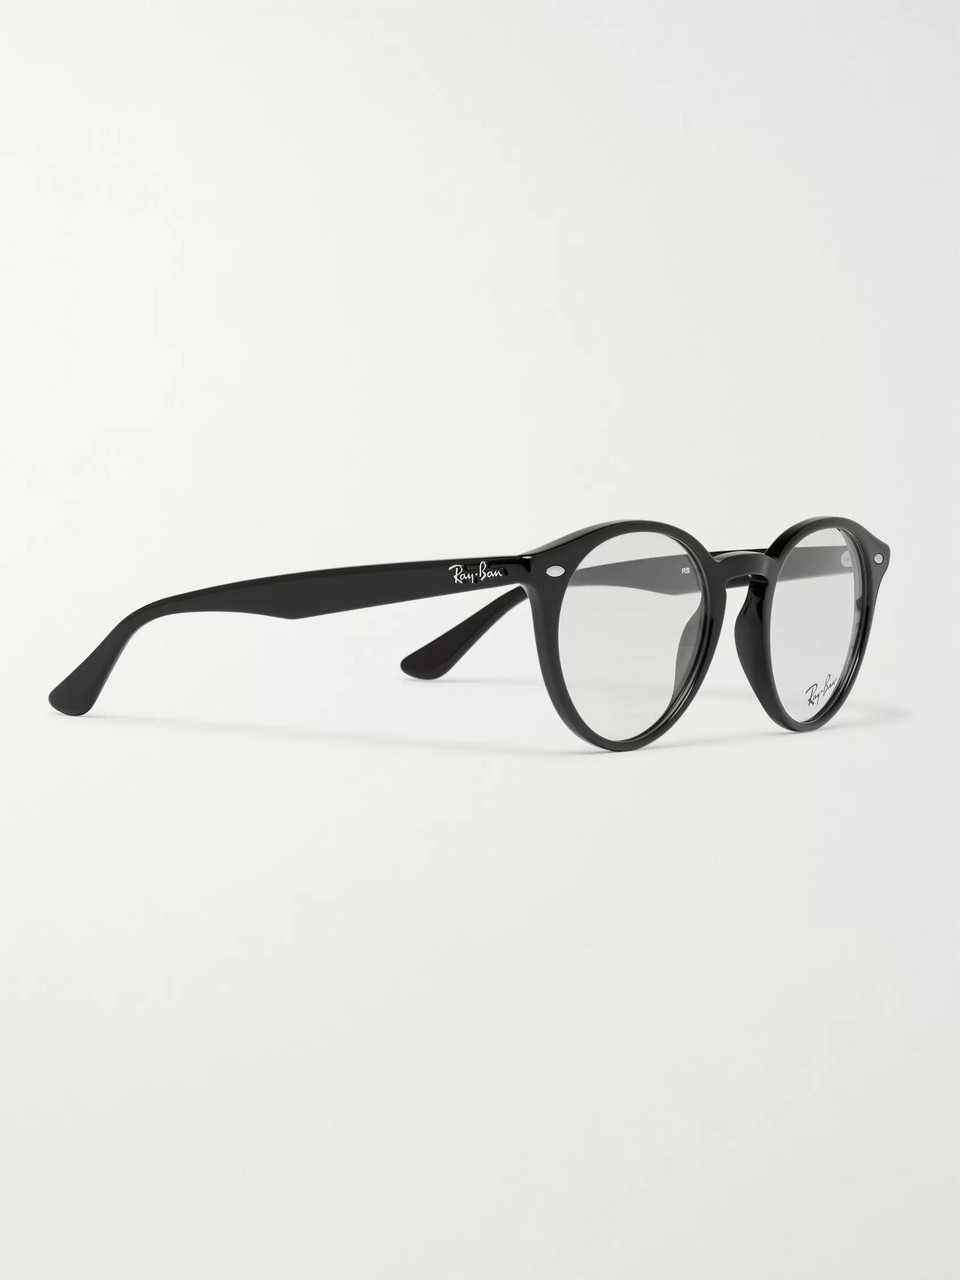 e799b5c8ee4 Ray-Ban Round-Frame Acetate Optical Glasses